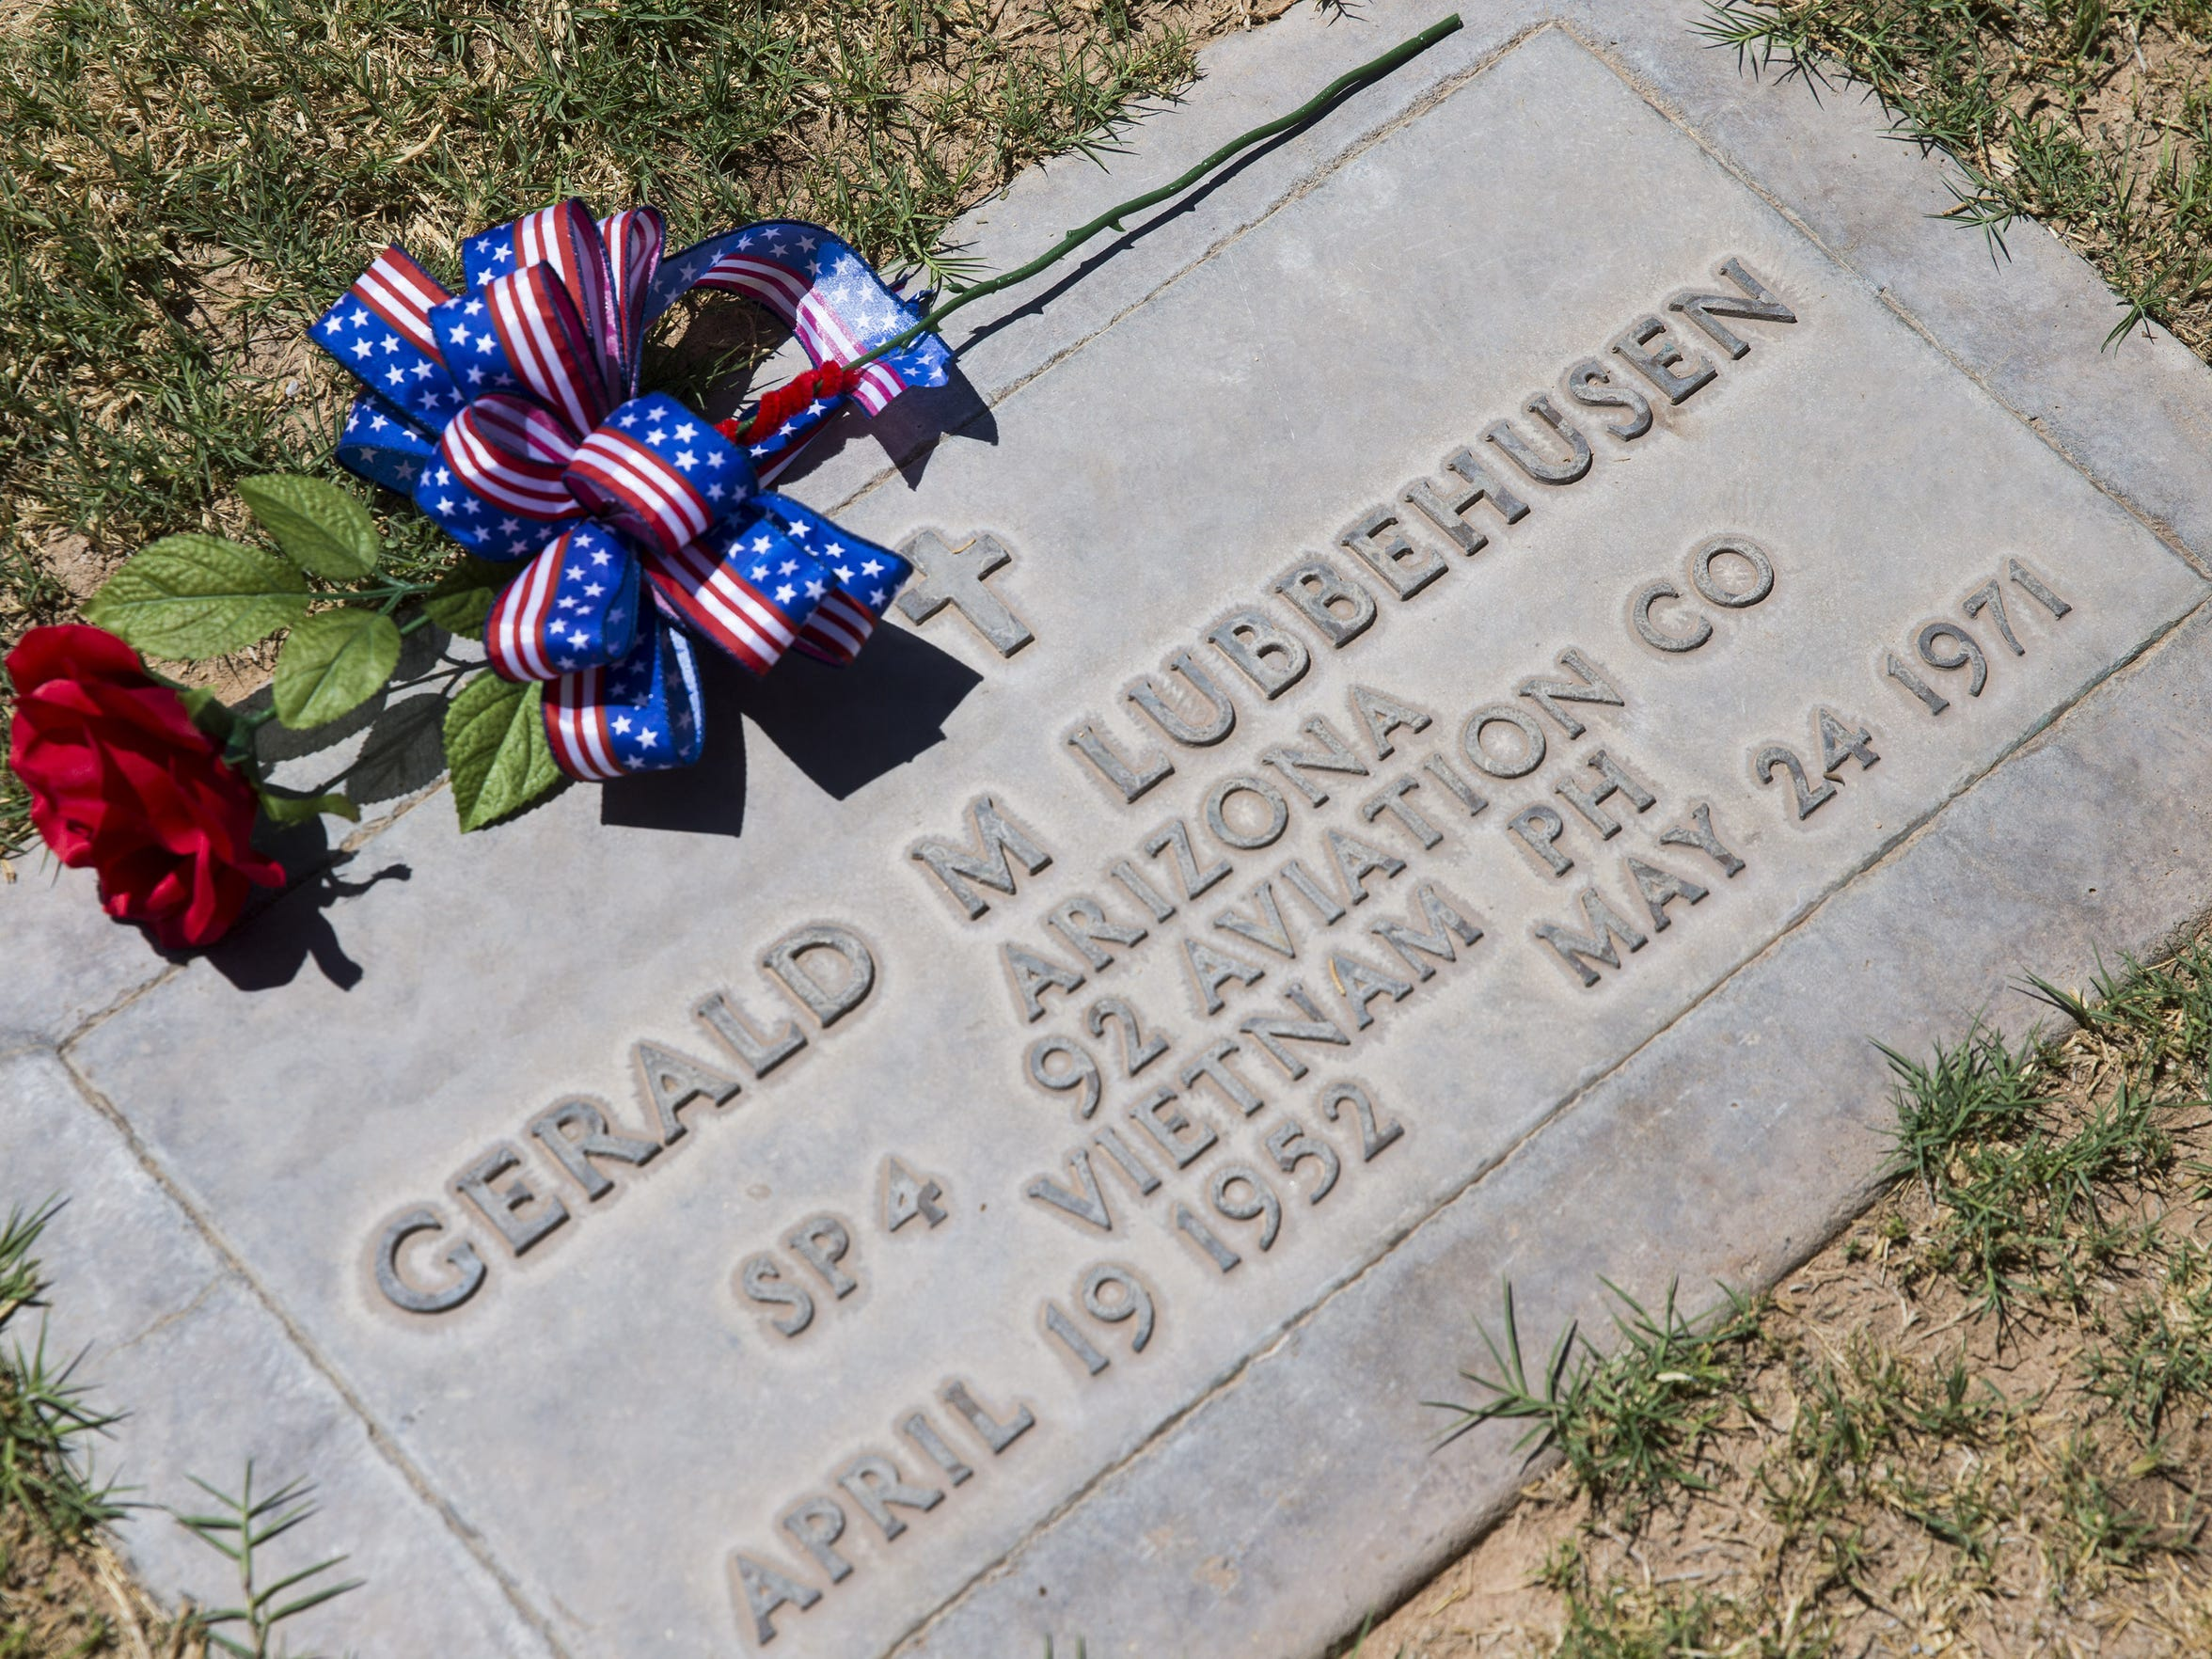 Spc. Gerald Lubbehusen was buried at Holy Cross Cemetery